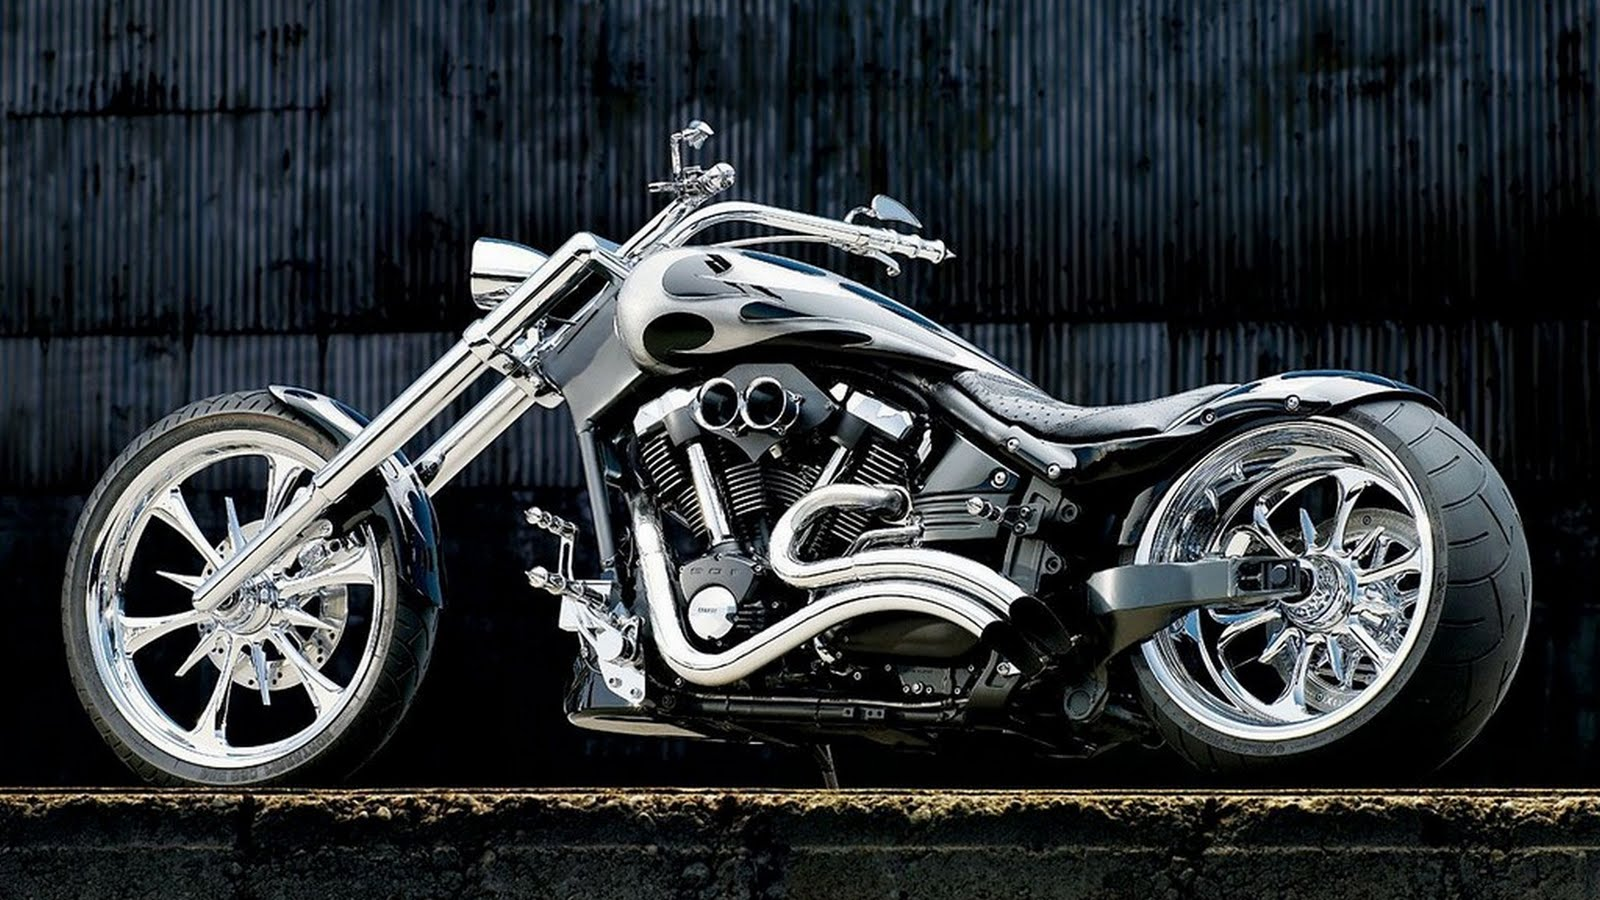 Motorcycle Wallpaper 6990 Hd Wallpapers in Bikes   Imagescicom 1600x900